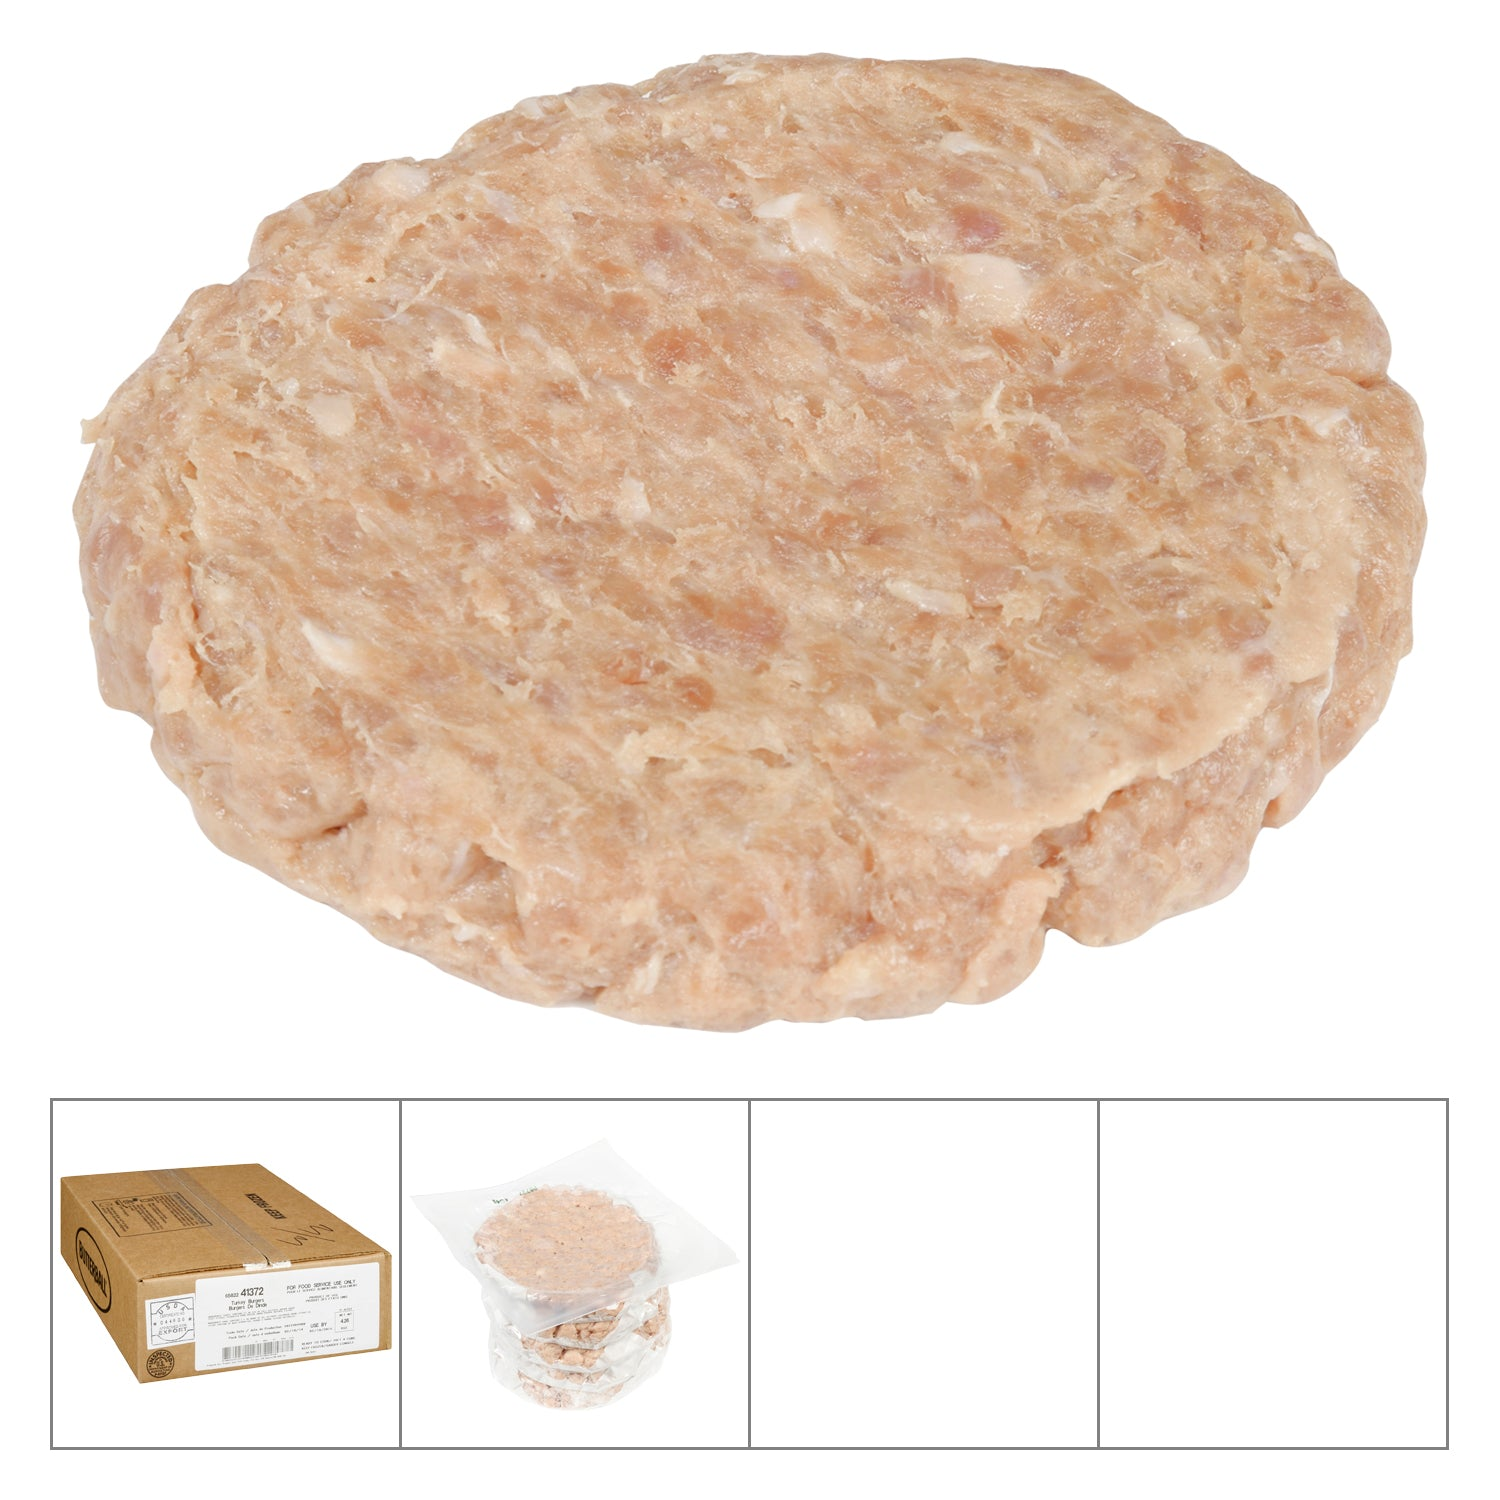 Butterball Frozen Turkey Burger 5 oz - 30 Pack [$1.47/each]